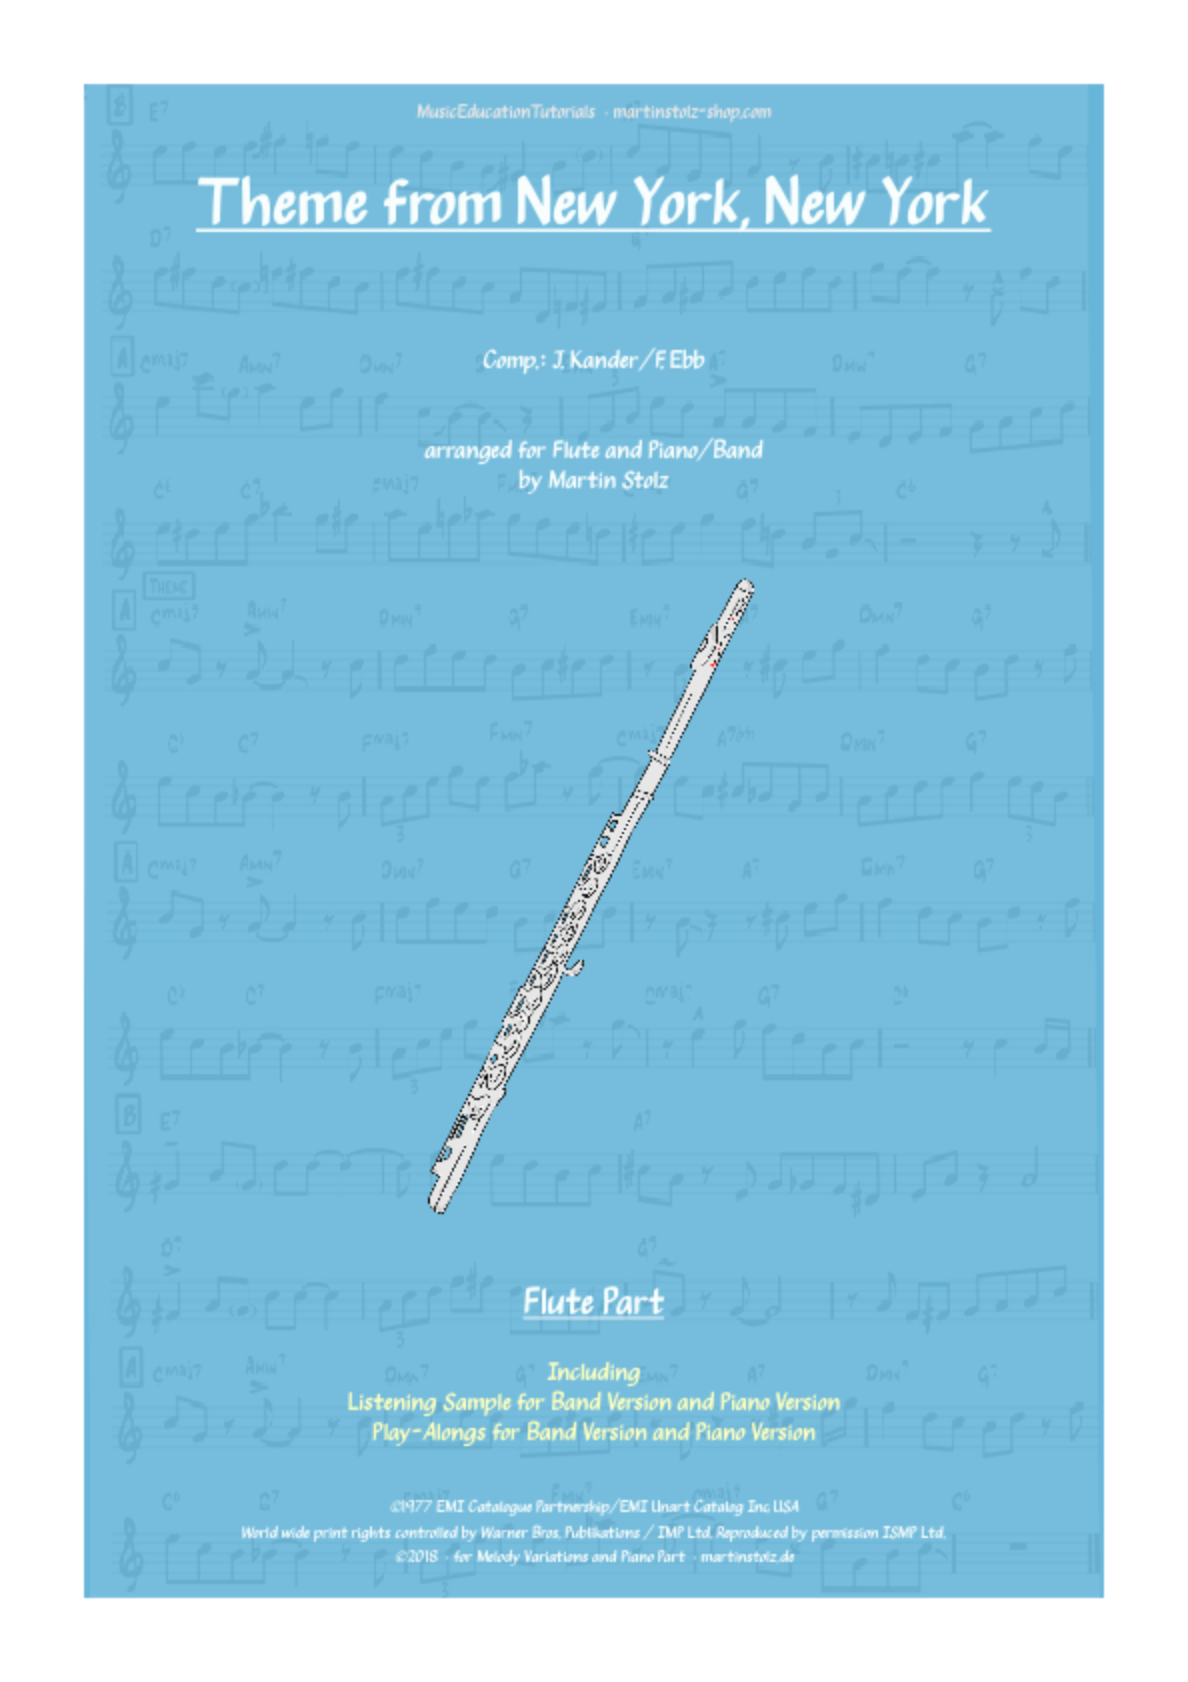 New York, New York for Flute & Band/Piano